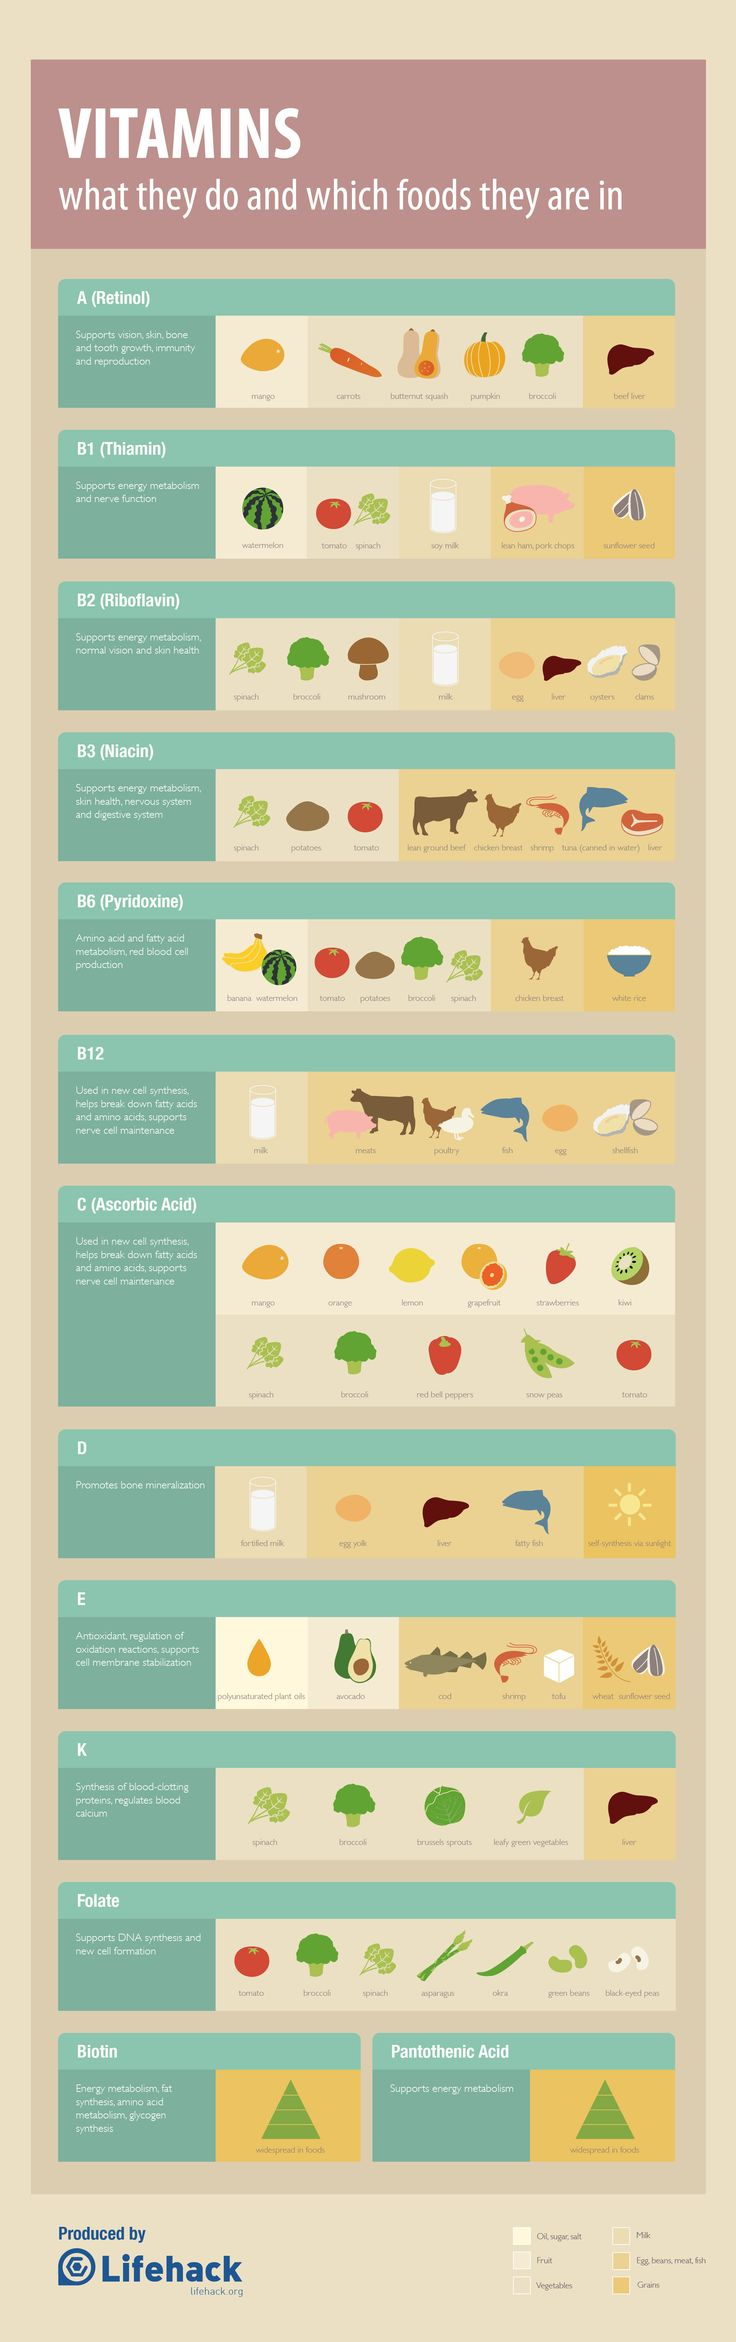 Vitamins Cheat Sheet: What They Do and Good Food Sources (Infographic)